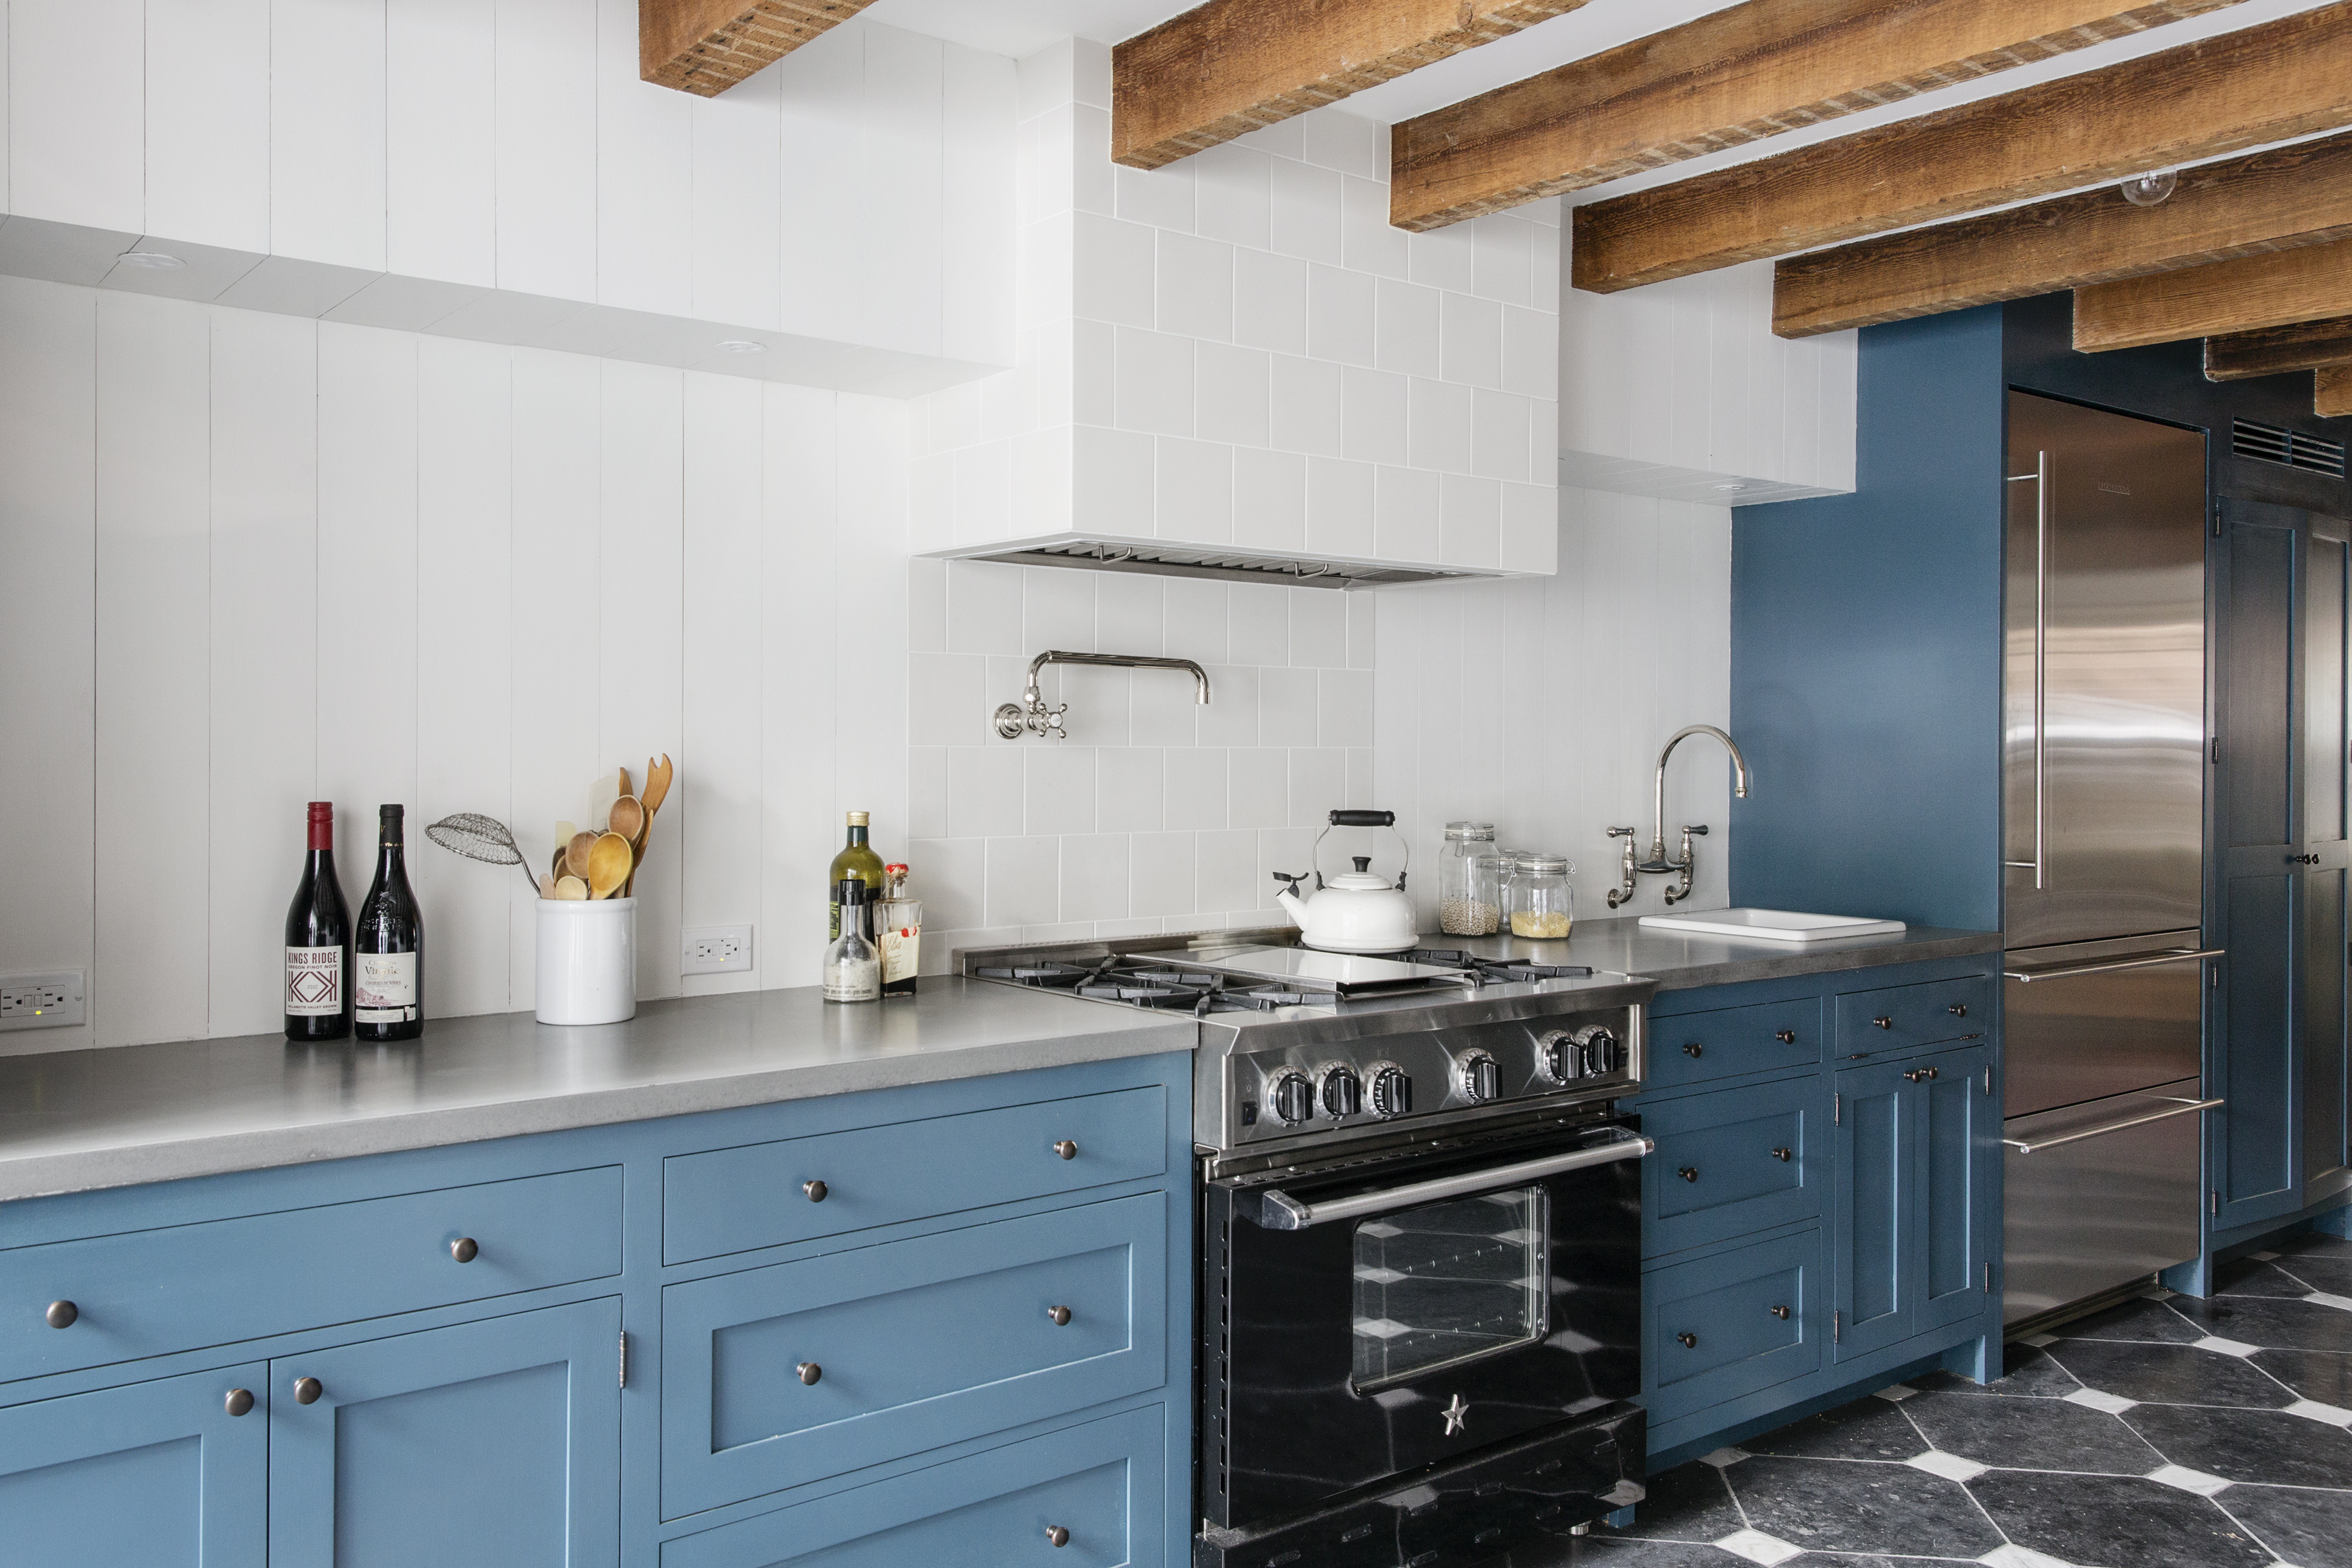 Landhausküche Blau Grau 7 Colorful Kitchens That Will Make You Want To Paint Your ...